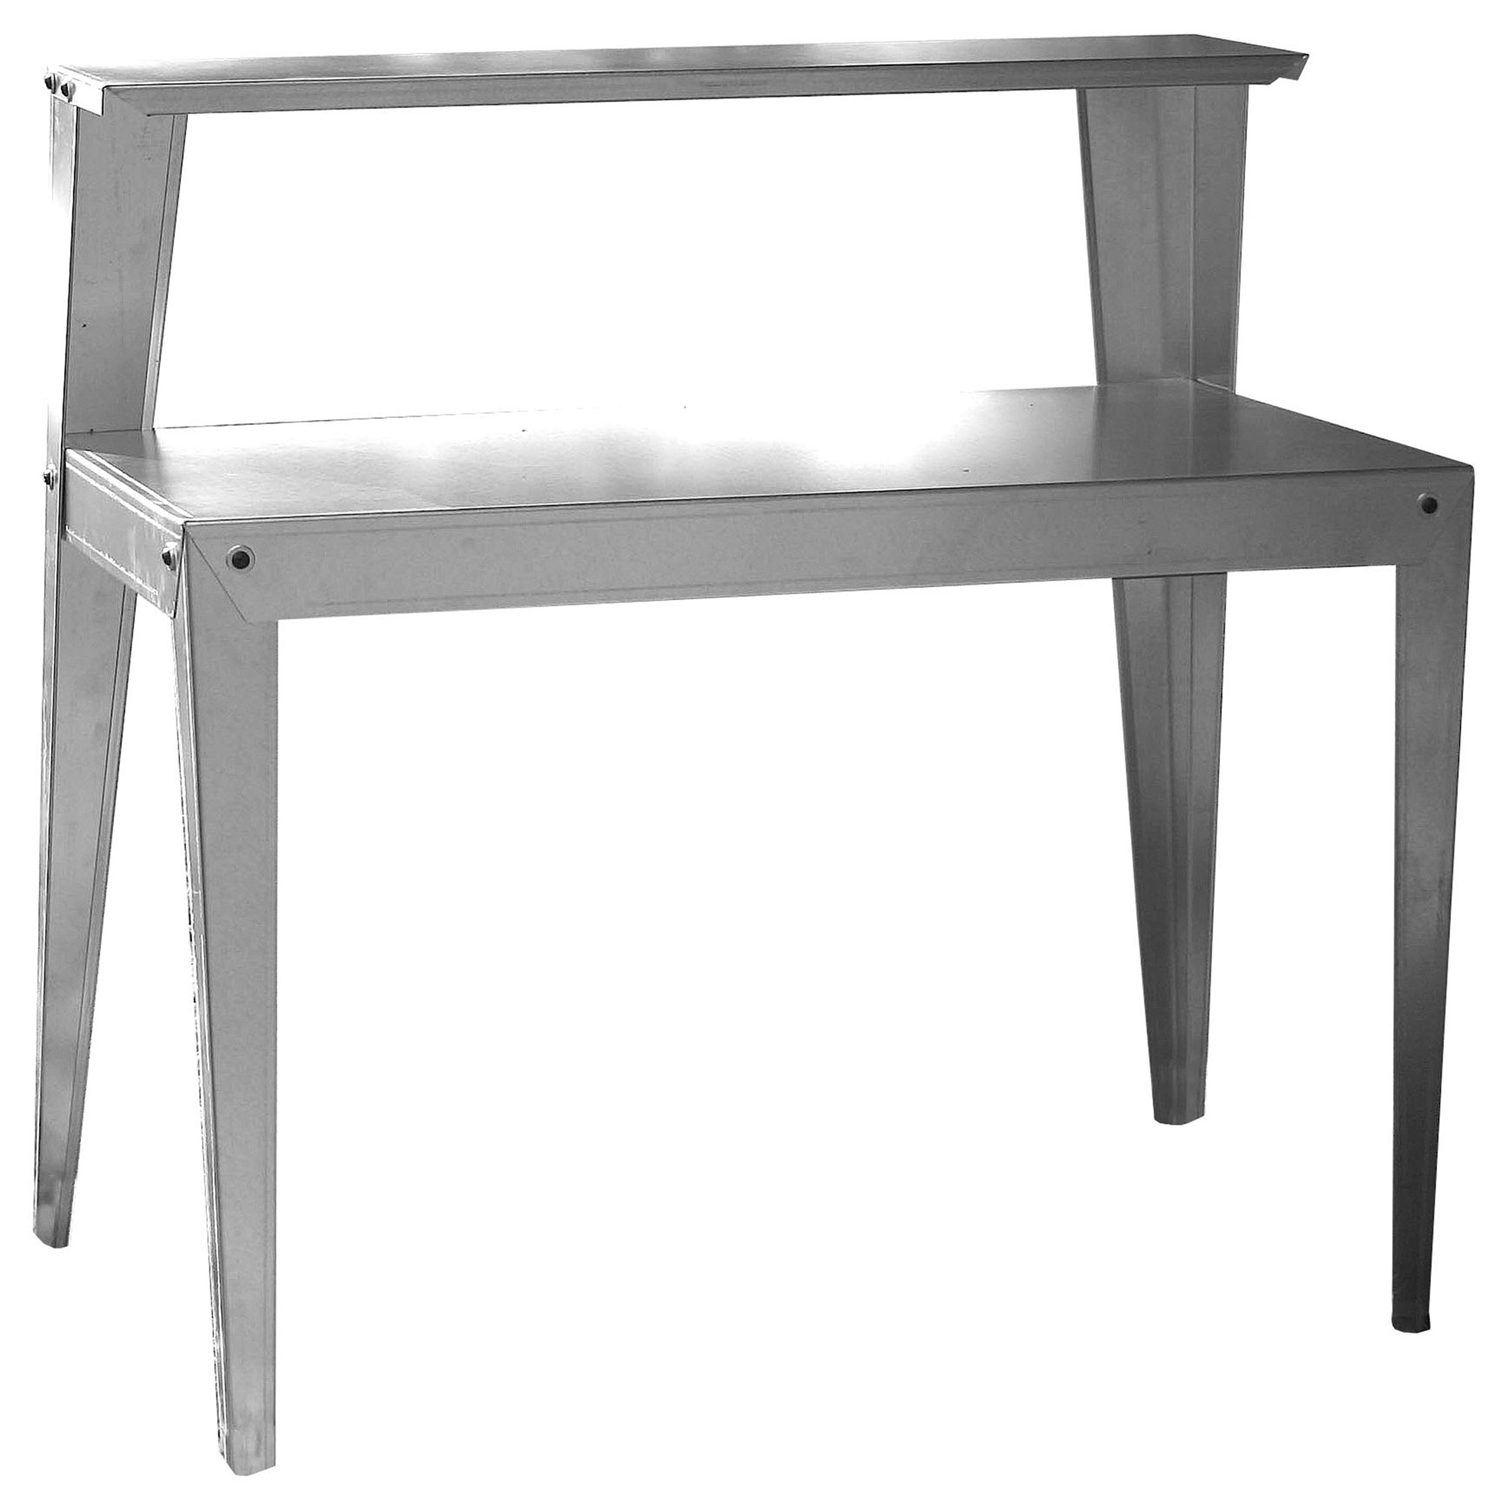 24 x 44 inch galvanized steel top utility table workbench potting